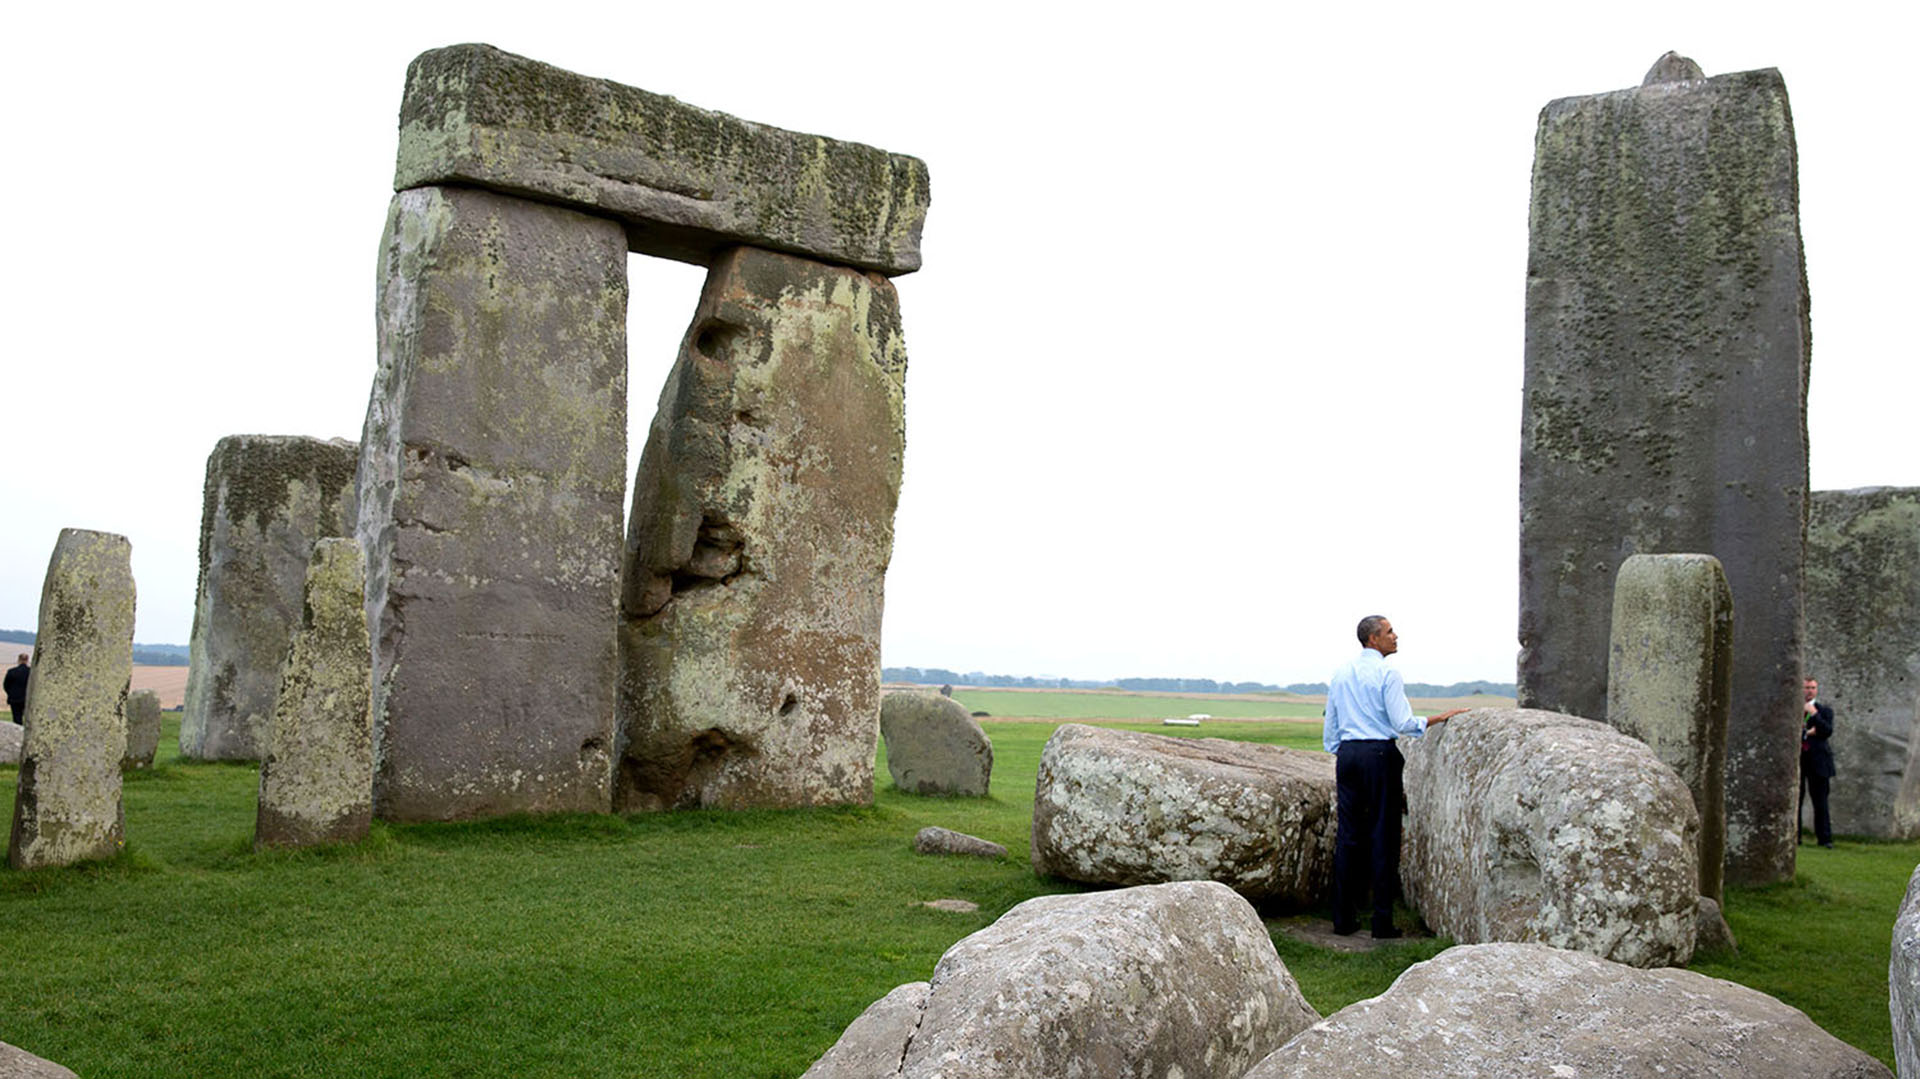 Obama visita el monumento megalítico de Stonehenge en Wiltshire, Inglaterra, 5 de septiembre de 2014 (Official White House Photo by Pete Souza).